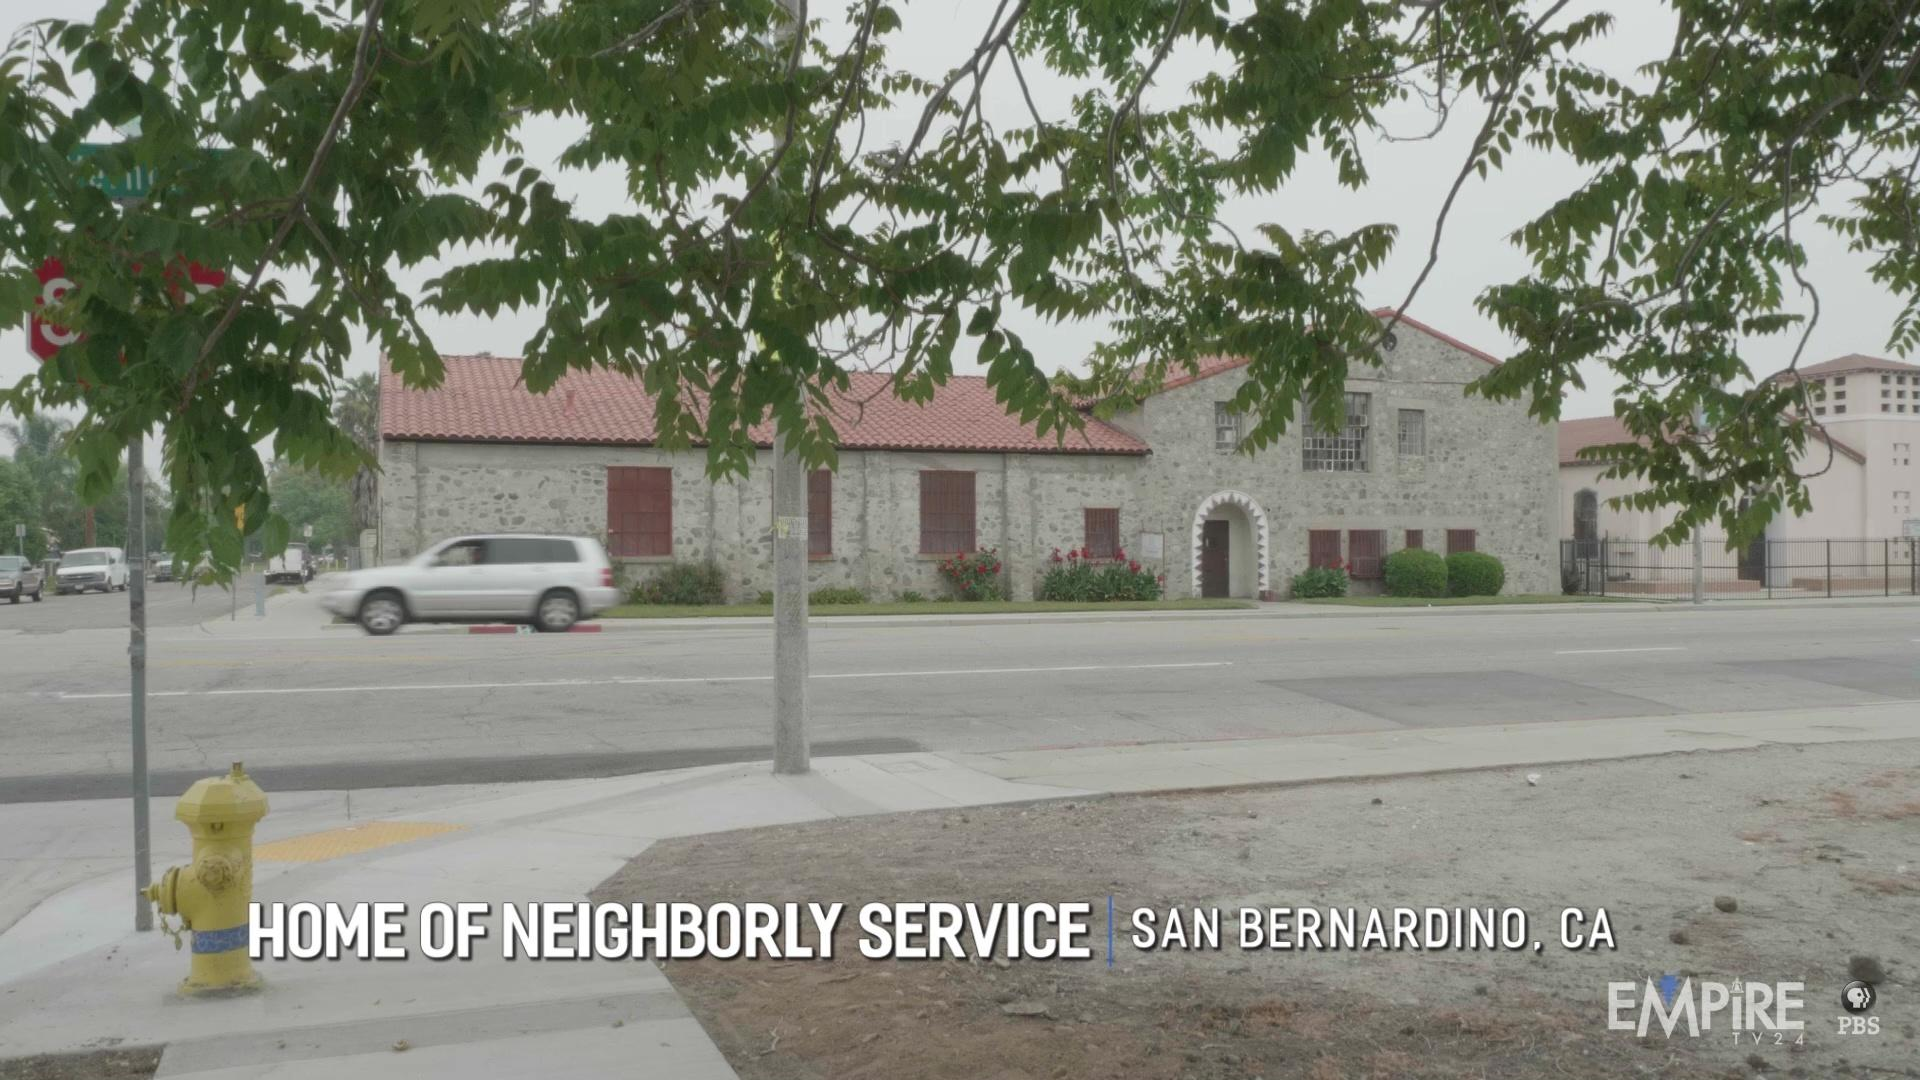 The Home of Neighborly Service